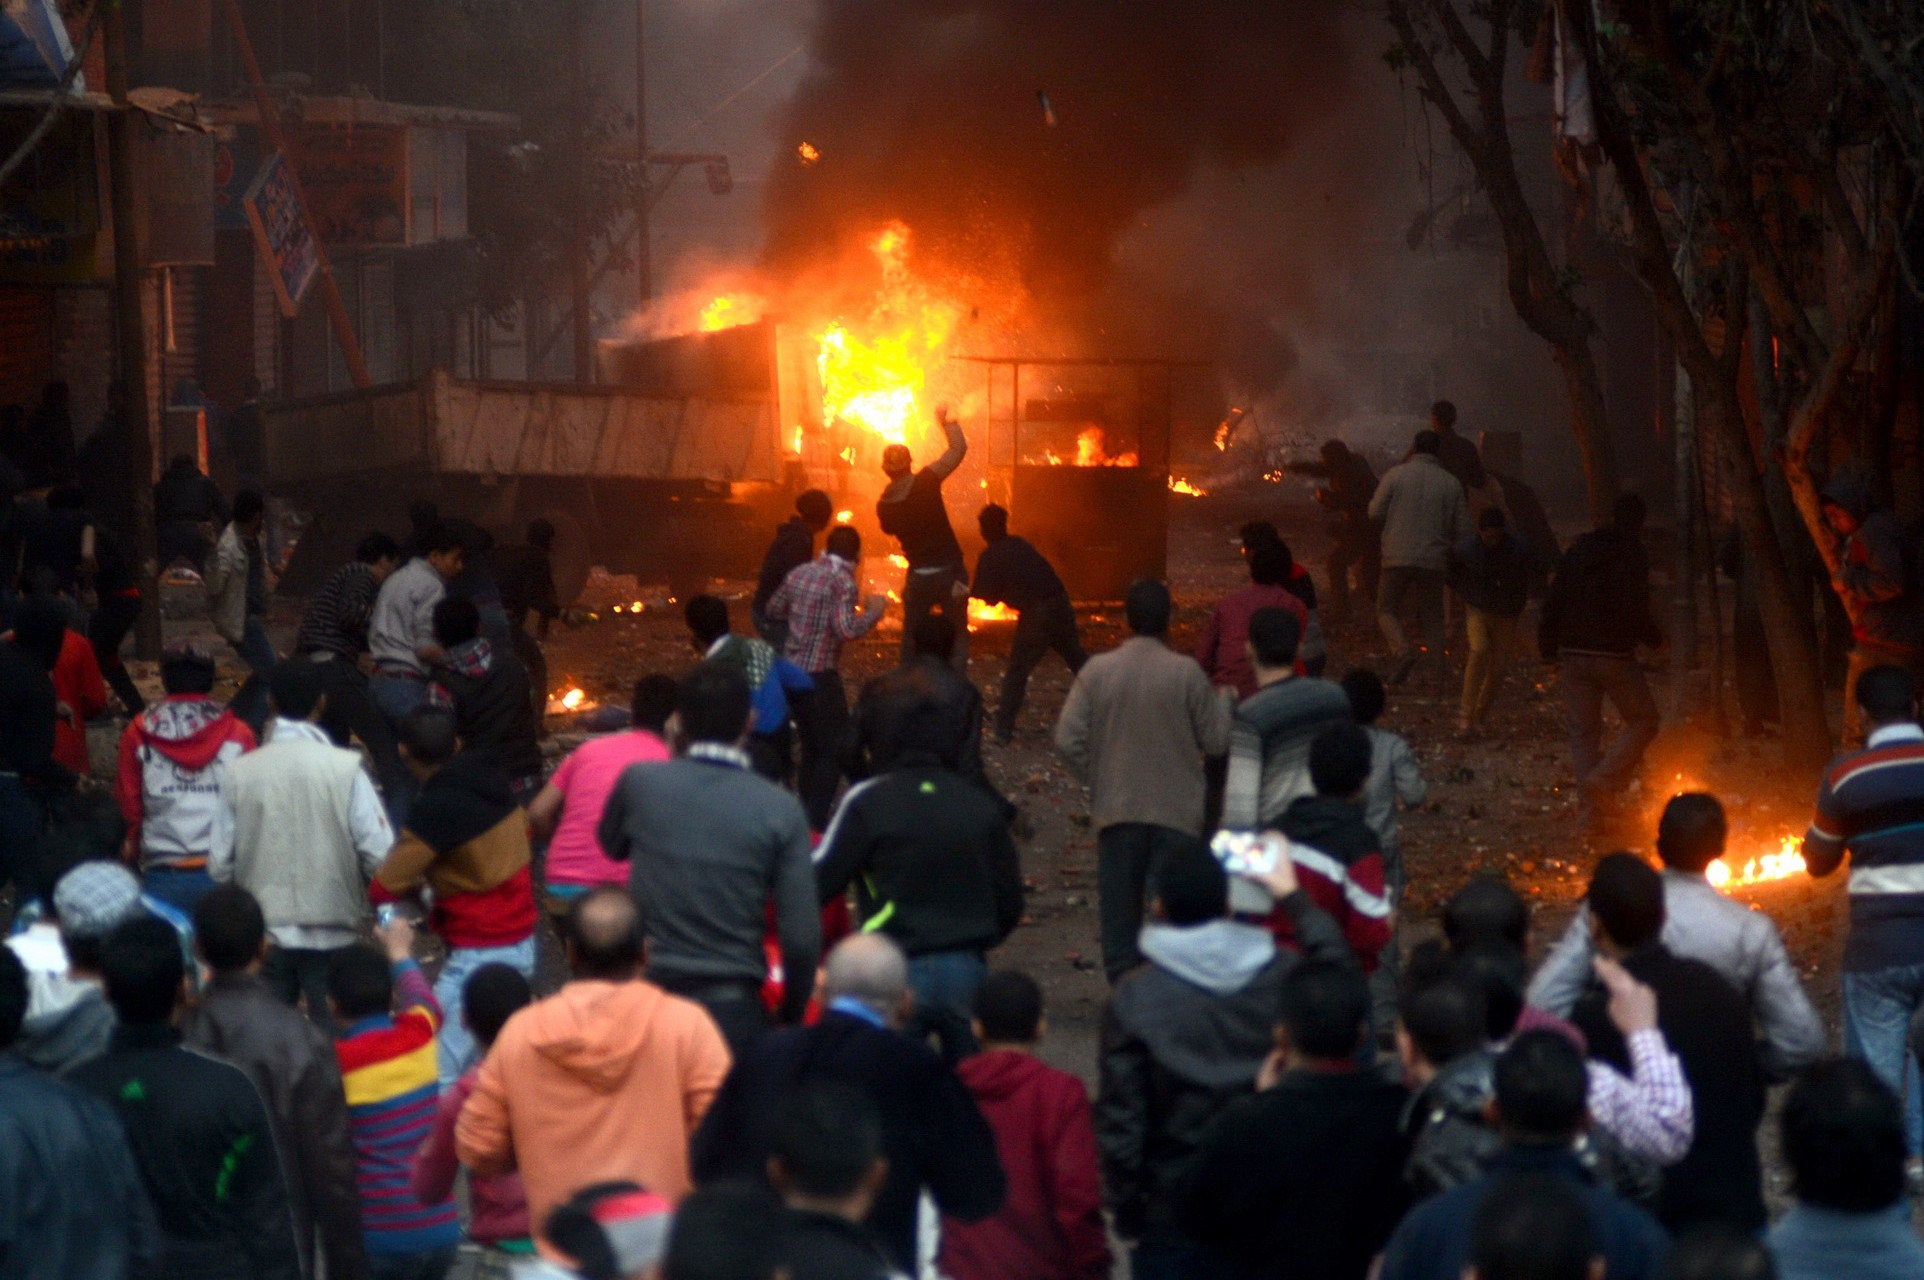 Supporters of the Muslim Brotherhood clash with civilians and Egyptian riot police in Alf Masskan district in the capital Cairo on January 17, 2014. At least one person was killed in clashes between Egyptian police and Islamists, as the country awaited results of a constitutional referendum billed as an endorsement of president Mohamed Morsi's overthrow.  (AFP PHOTO / AHMED GAMEL)